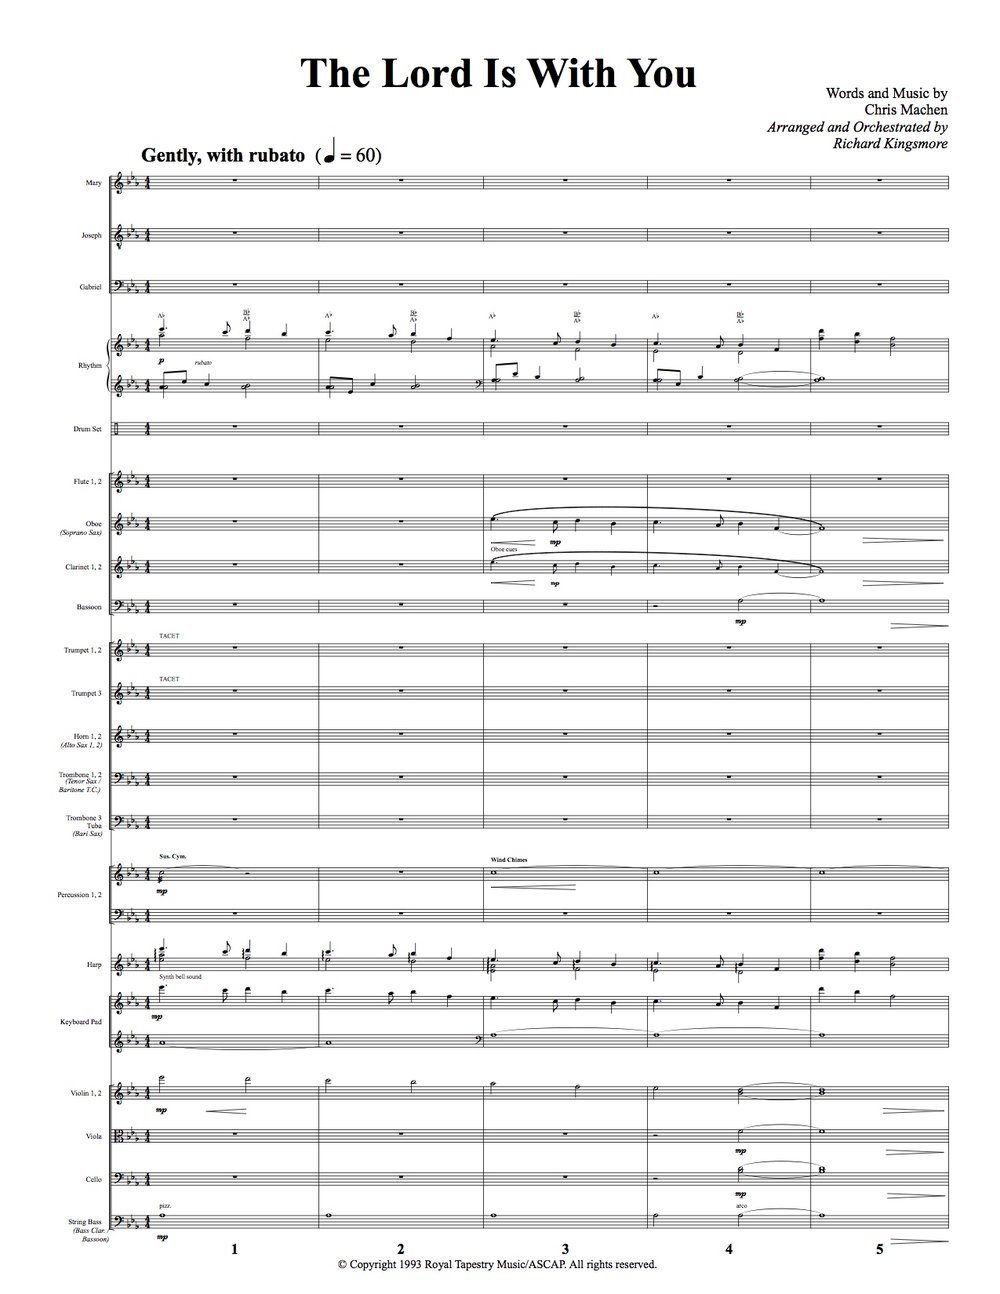 Conductor's Score - First Page